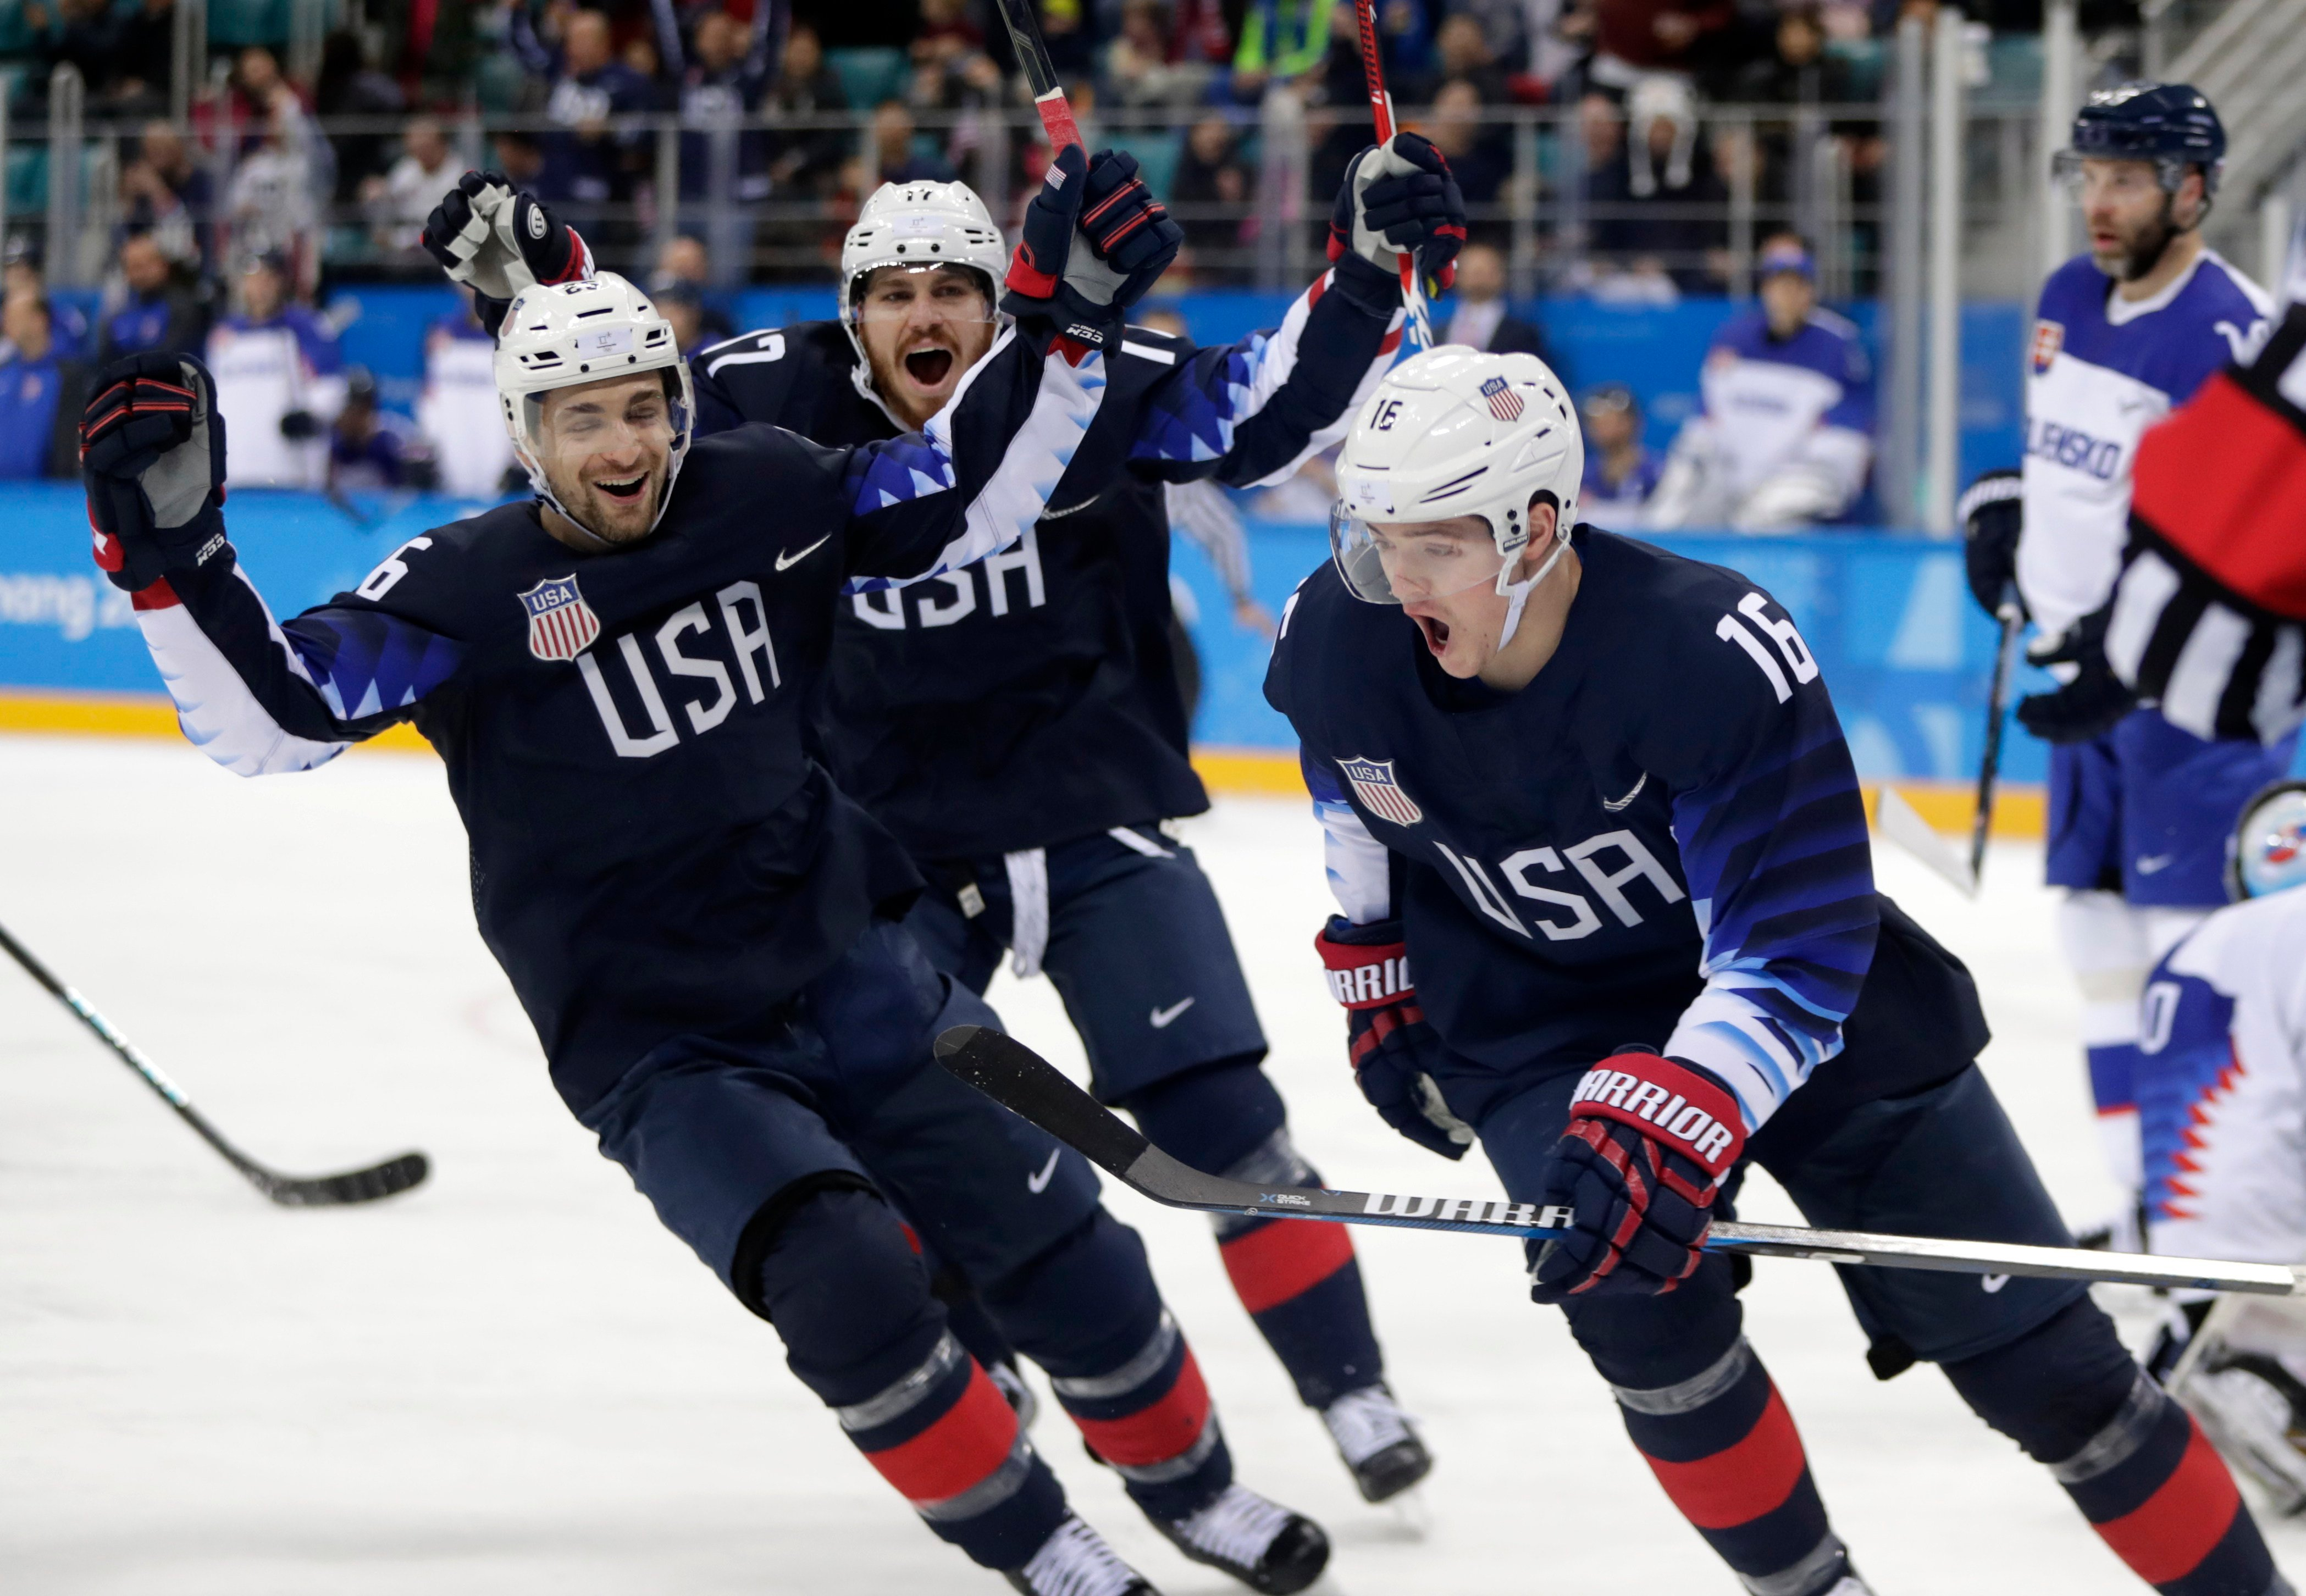 Here's what the USA men's hockey team is up against vs. Russian Federation